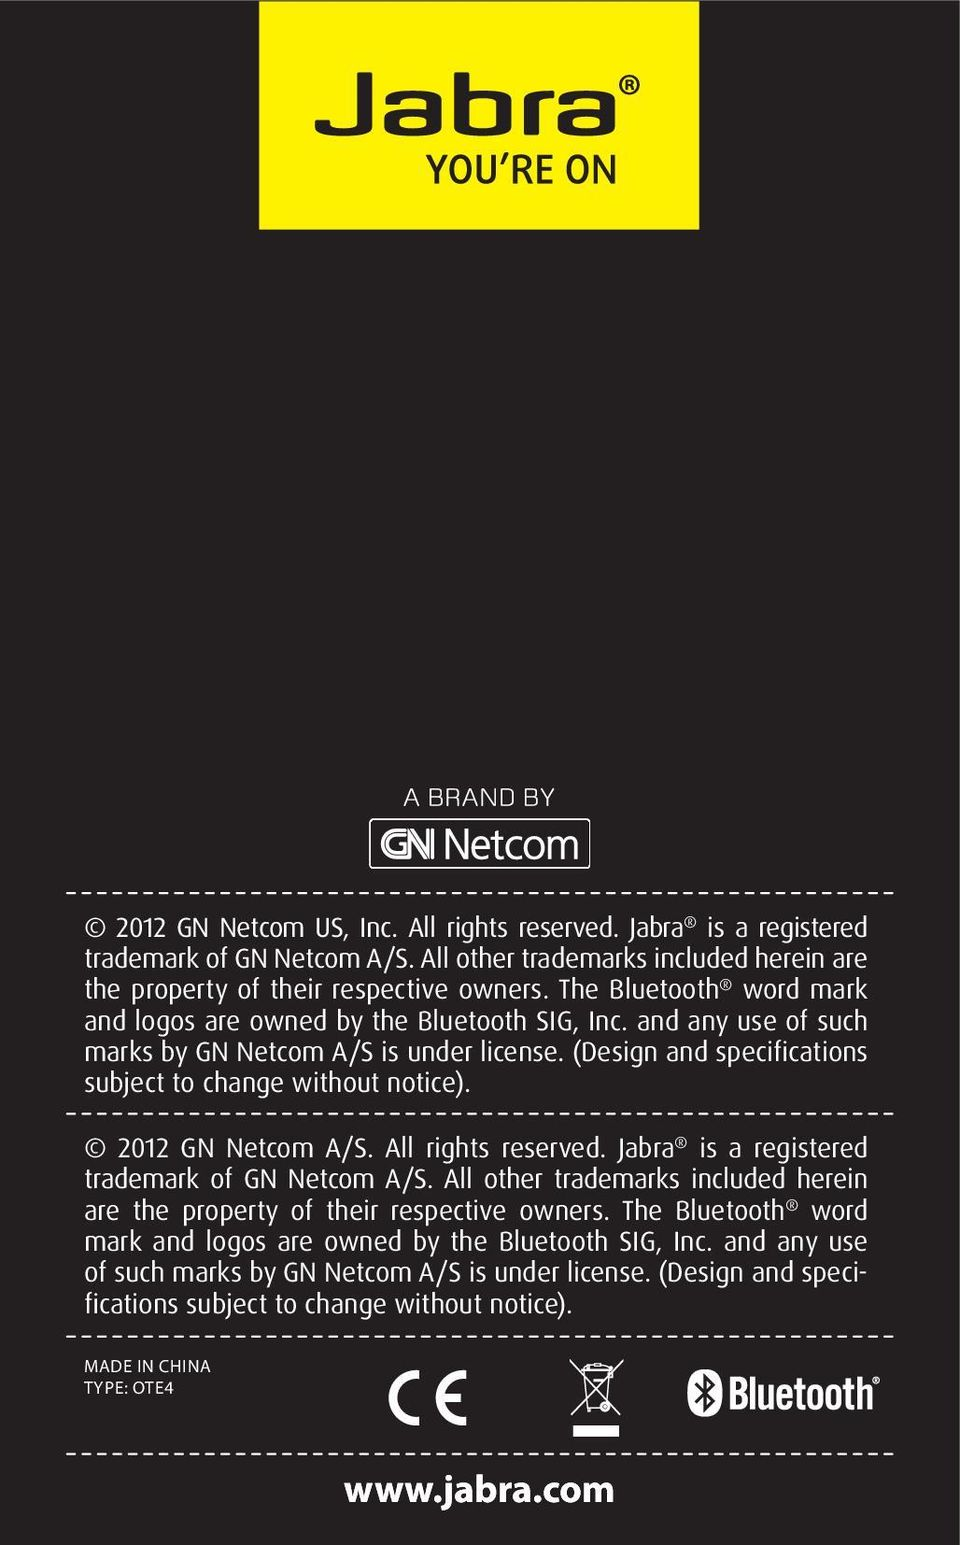 2012 GN Netcom A/S. All rights reserved. Jabra is a registered trademark of GN Netcom A/S. All other trademarks included herein are the property of their respective owners.